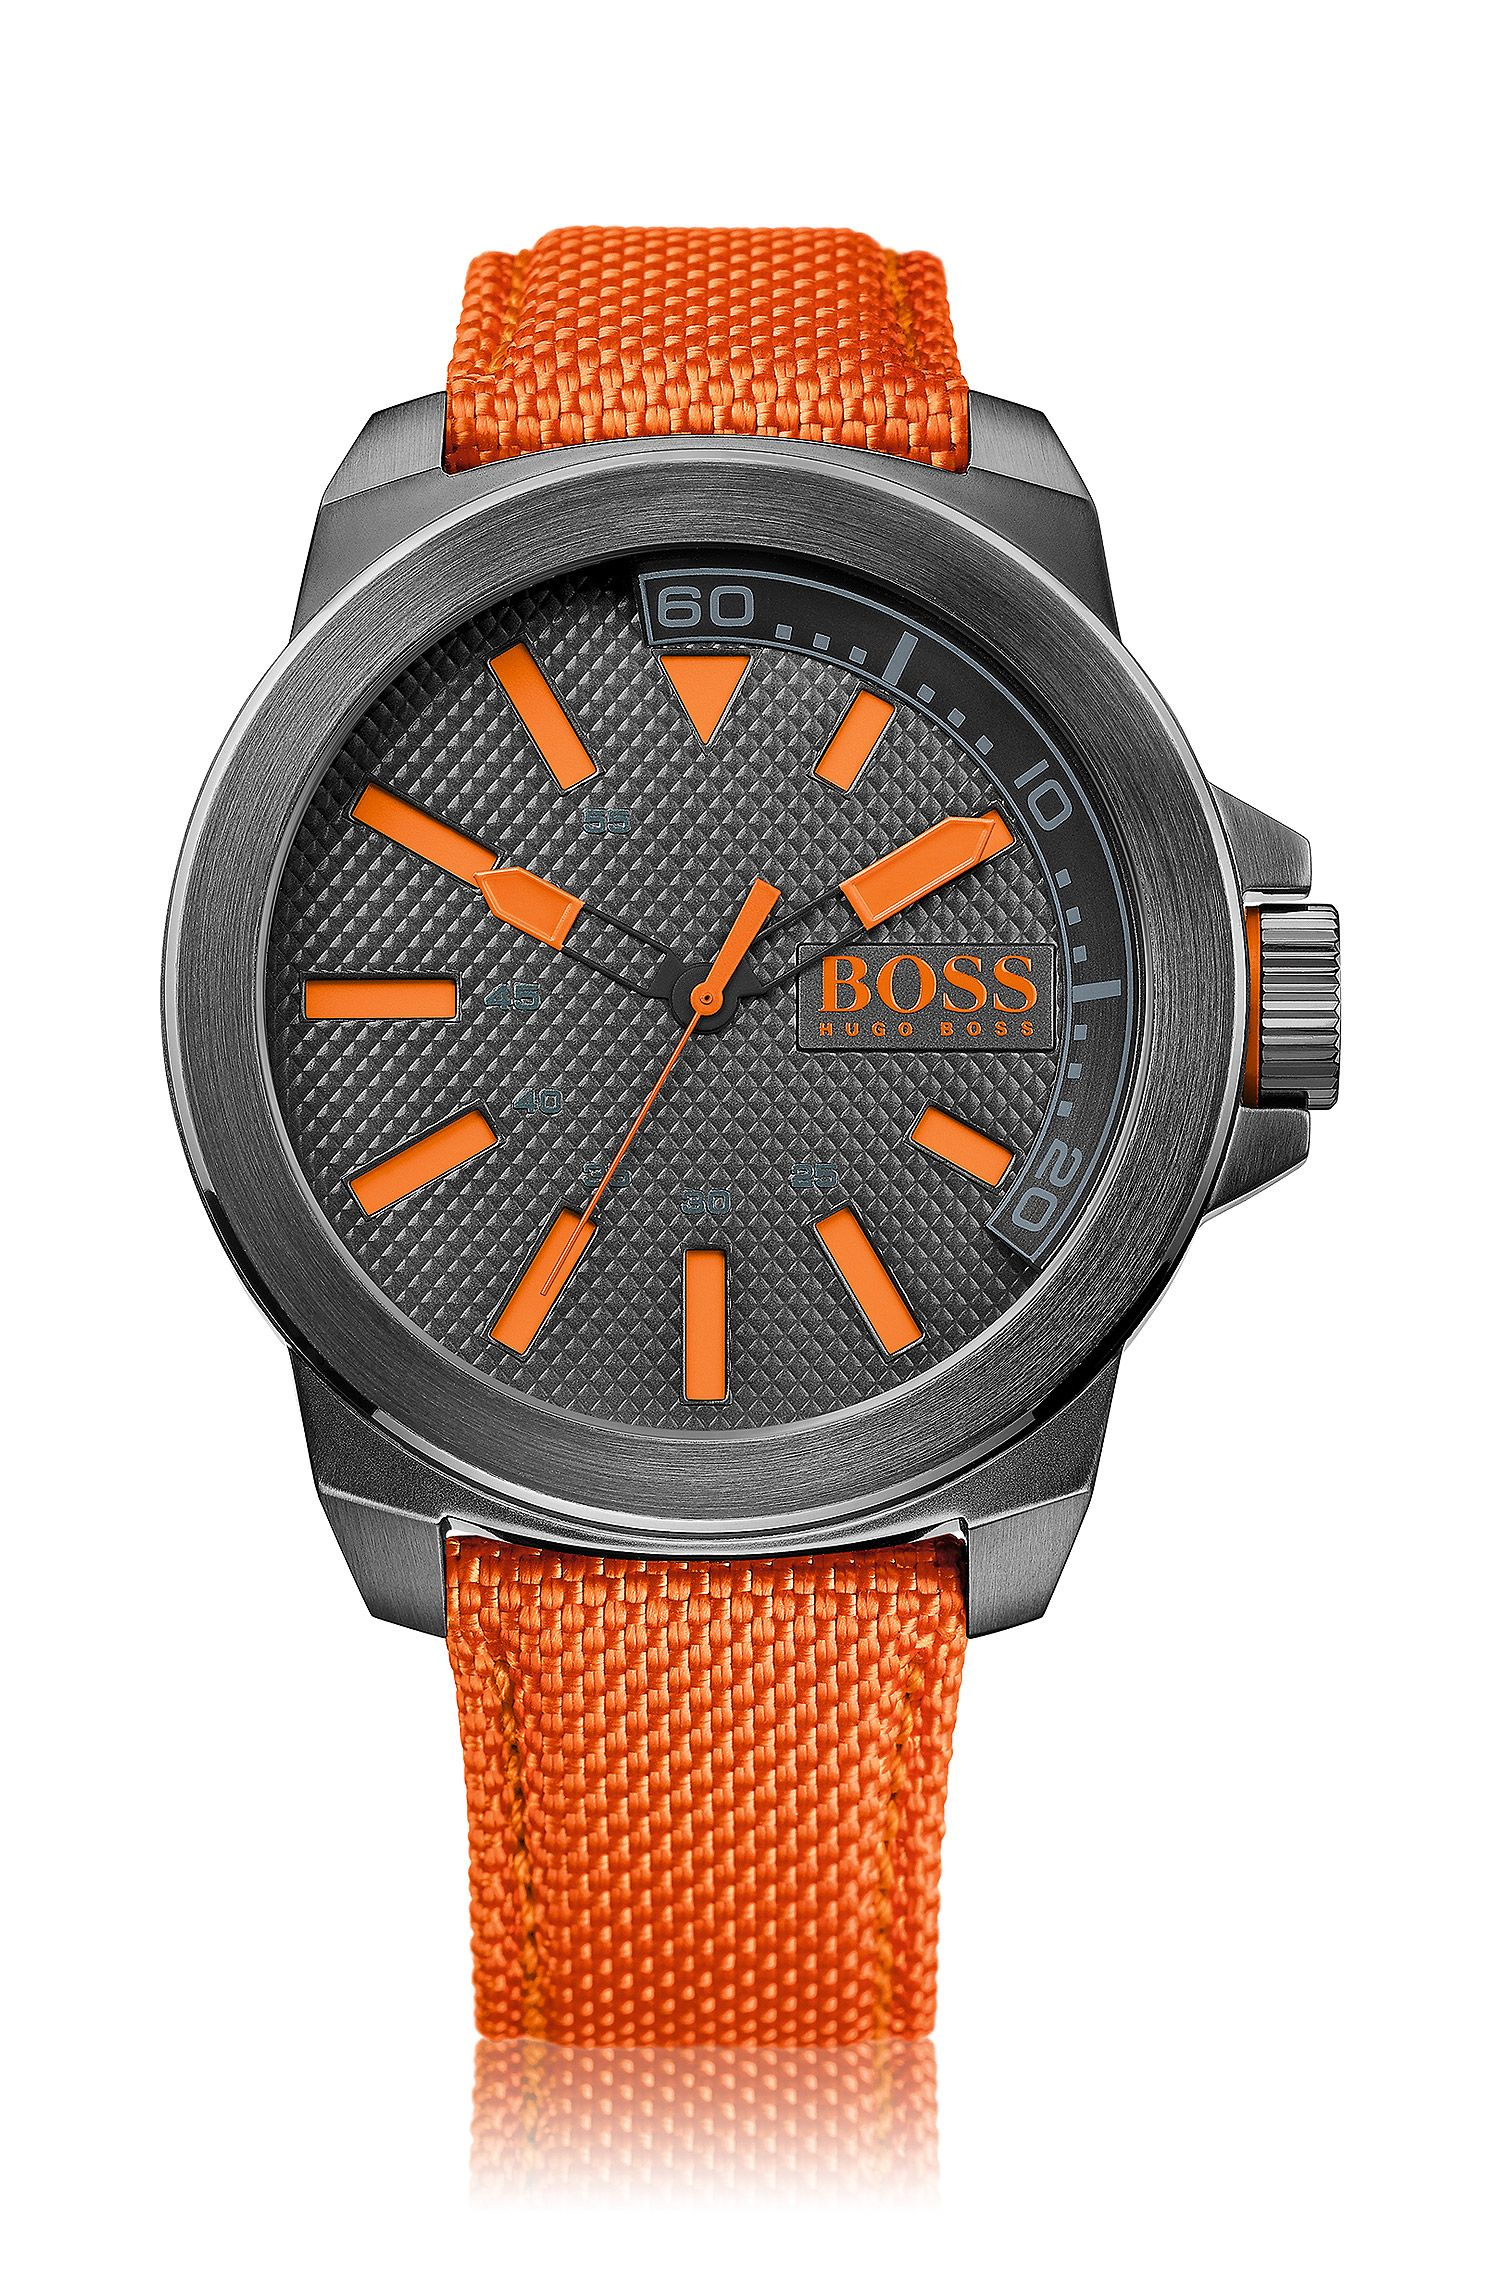 Watch 'HO7010' with a textile strap